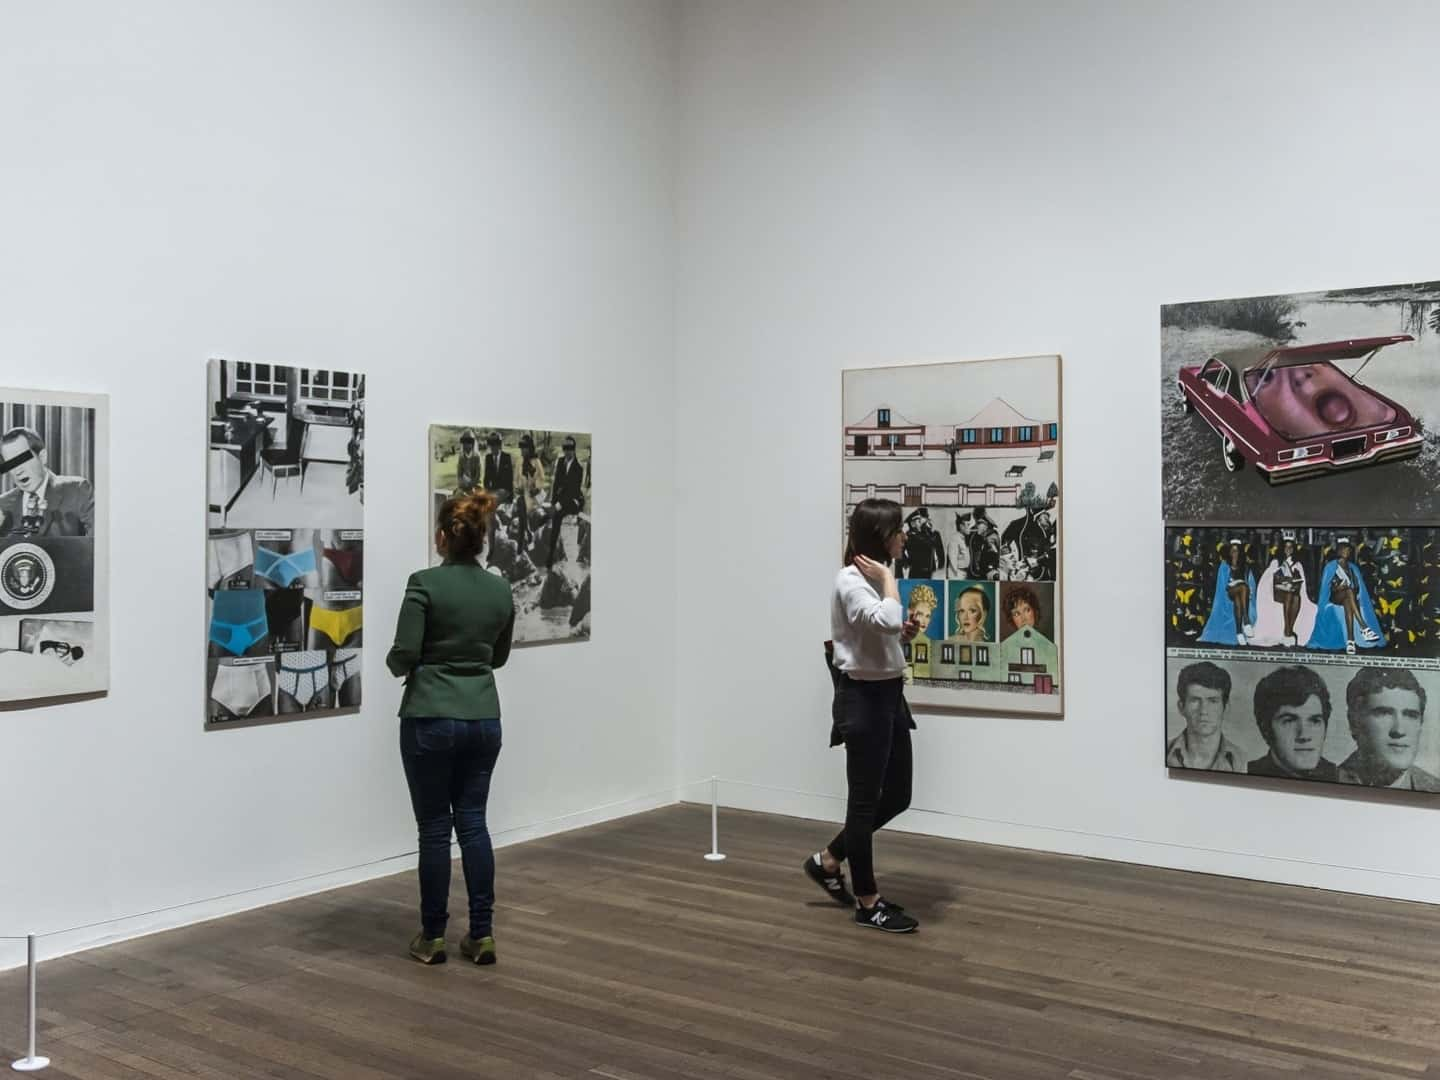 Installation views of The EY Exhibition: The World Goes Pop, Tate Modern, 17 September – 24 January 2015 Courtesy of Tate Photography